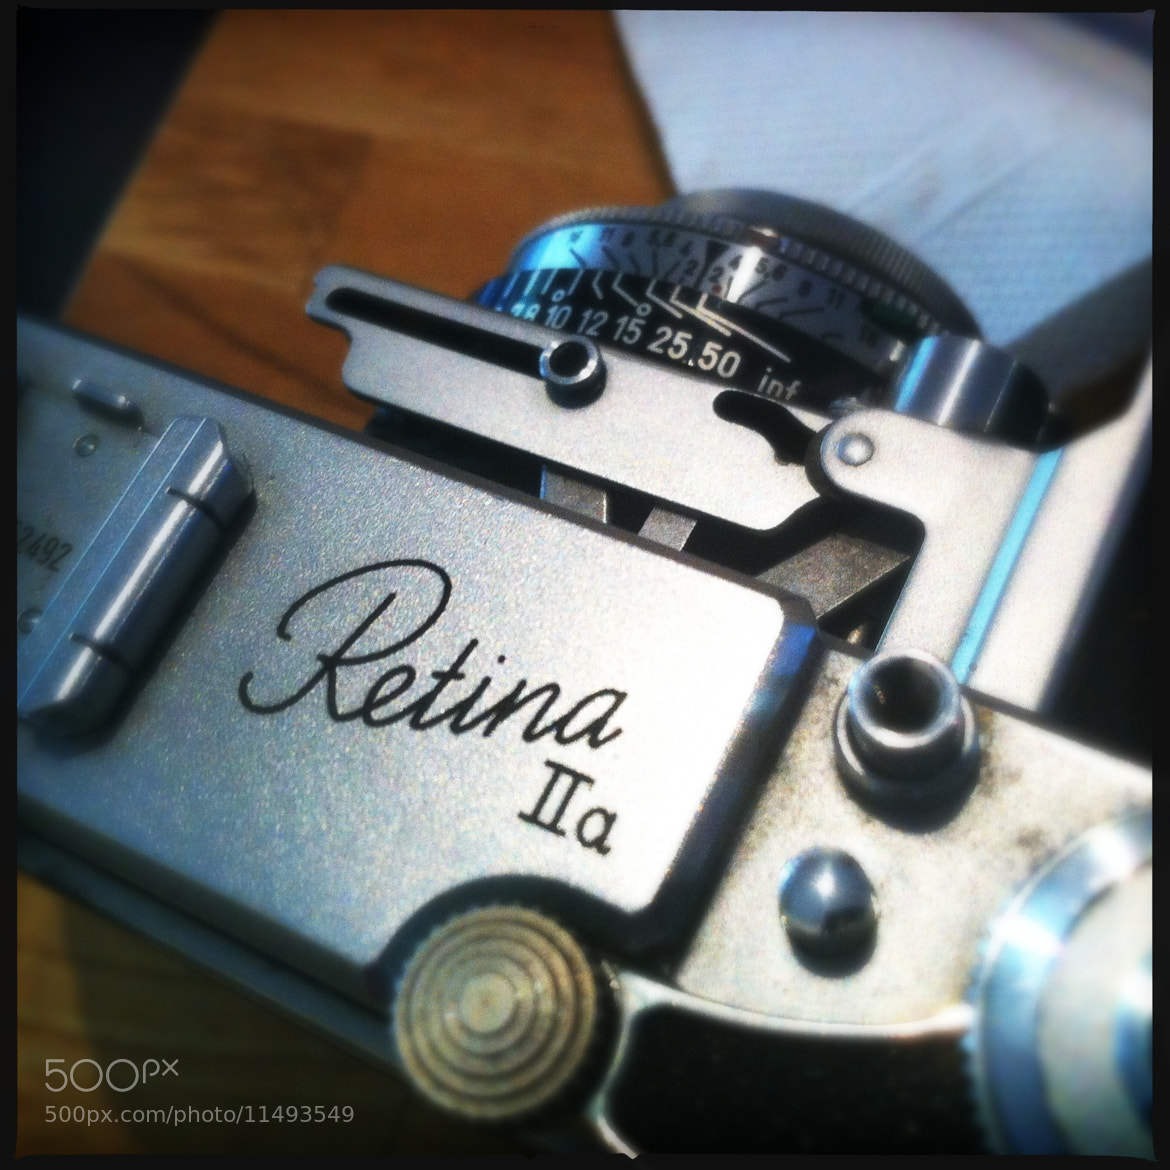 Photograph Retina IIa Camera by Chris Campbell on 500px